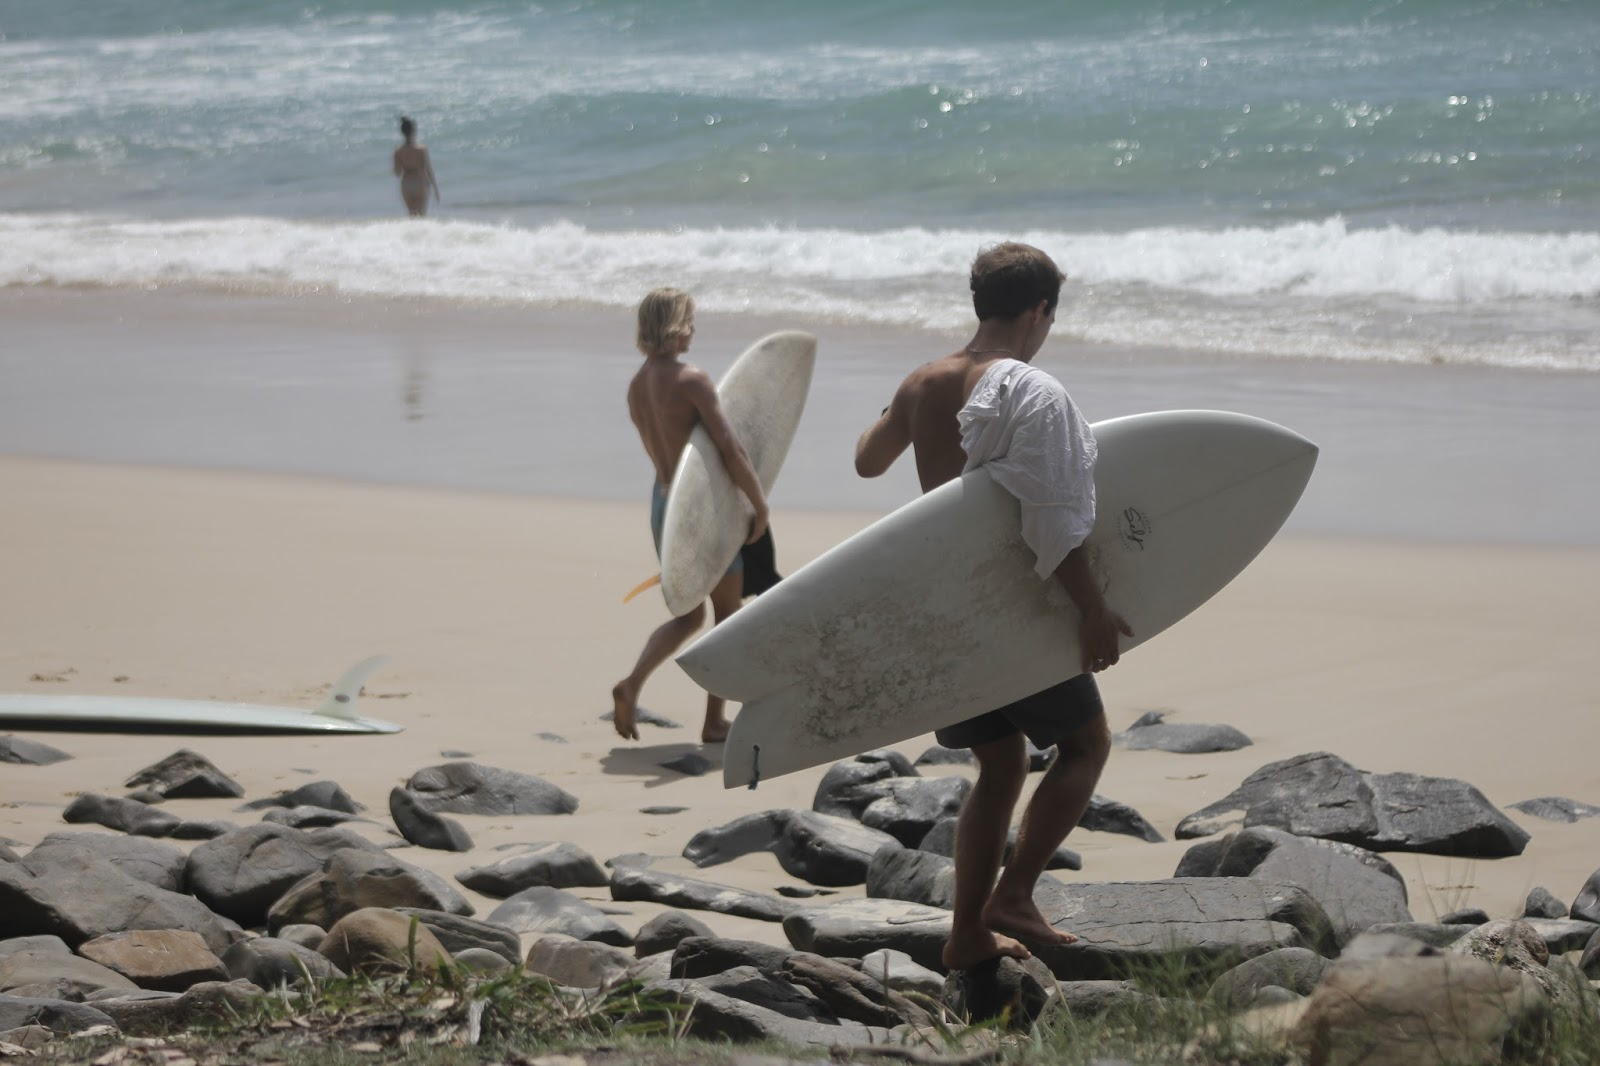 11-03-2016-australia-siebert-surfboards-03